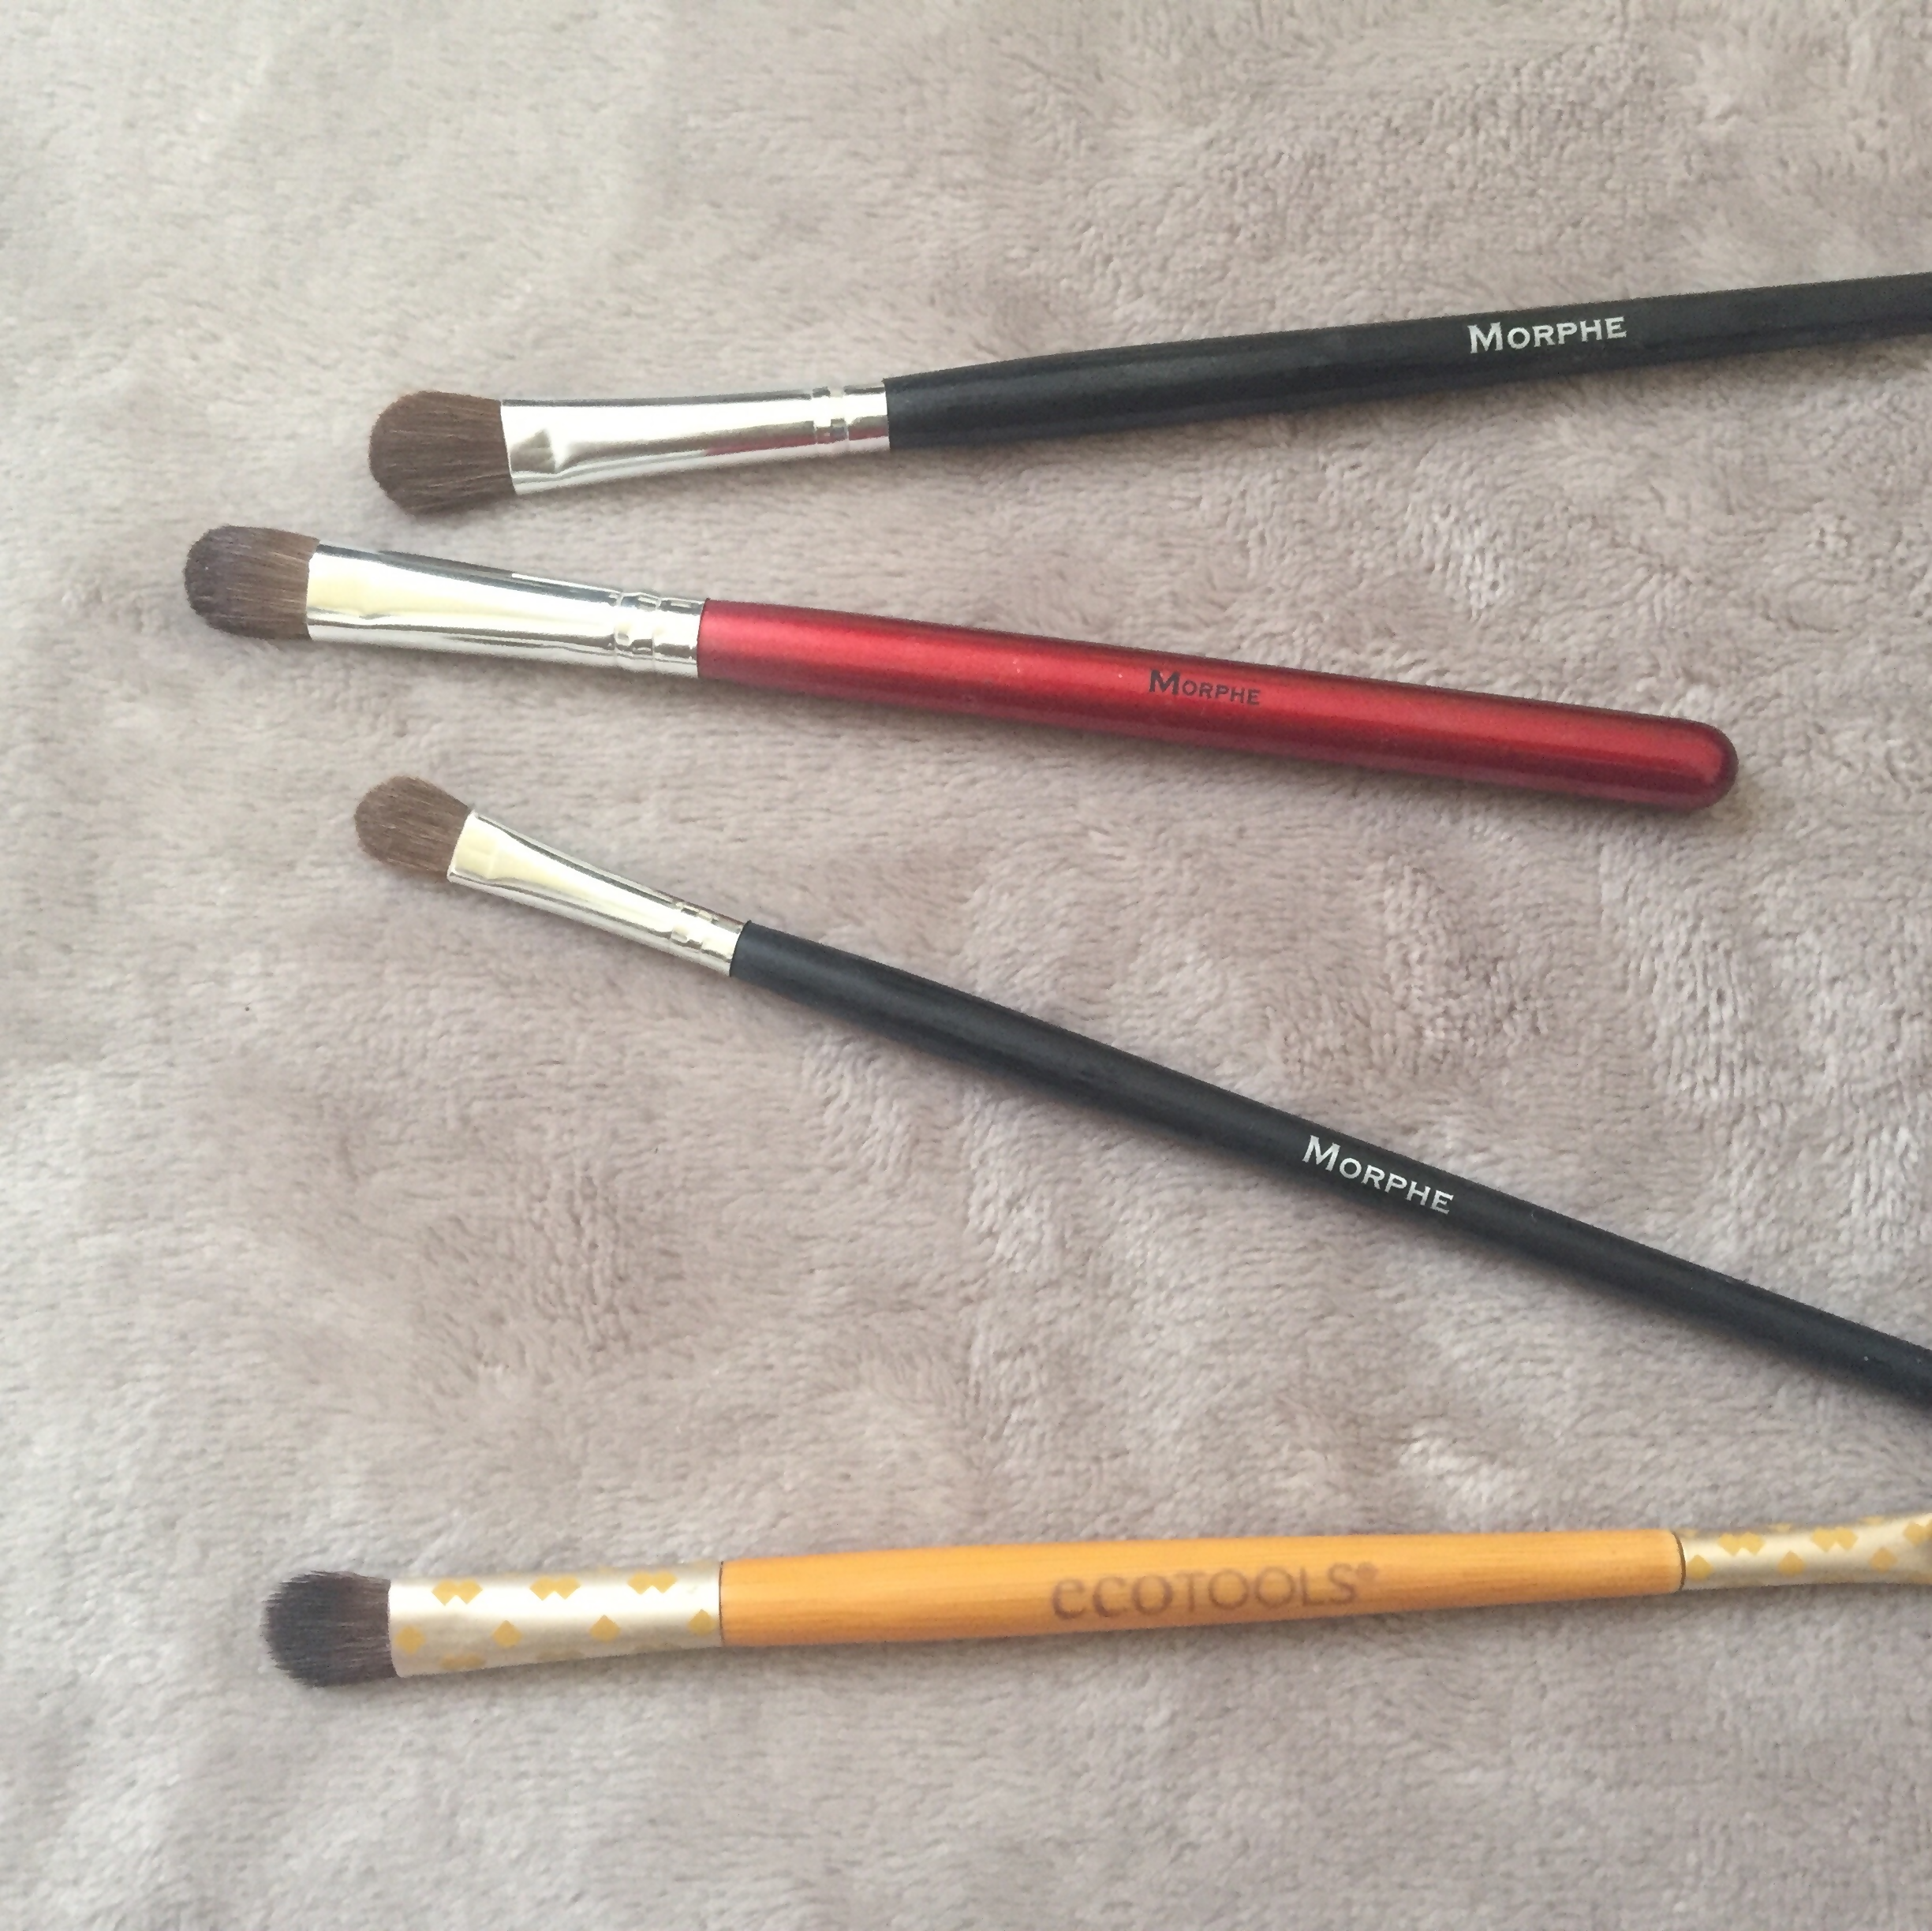 morphe smudge brush